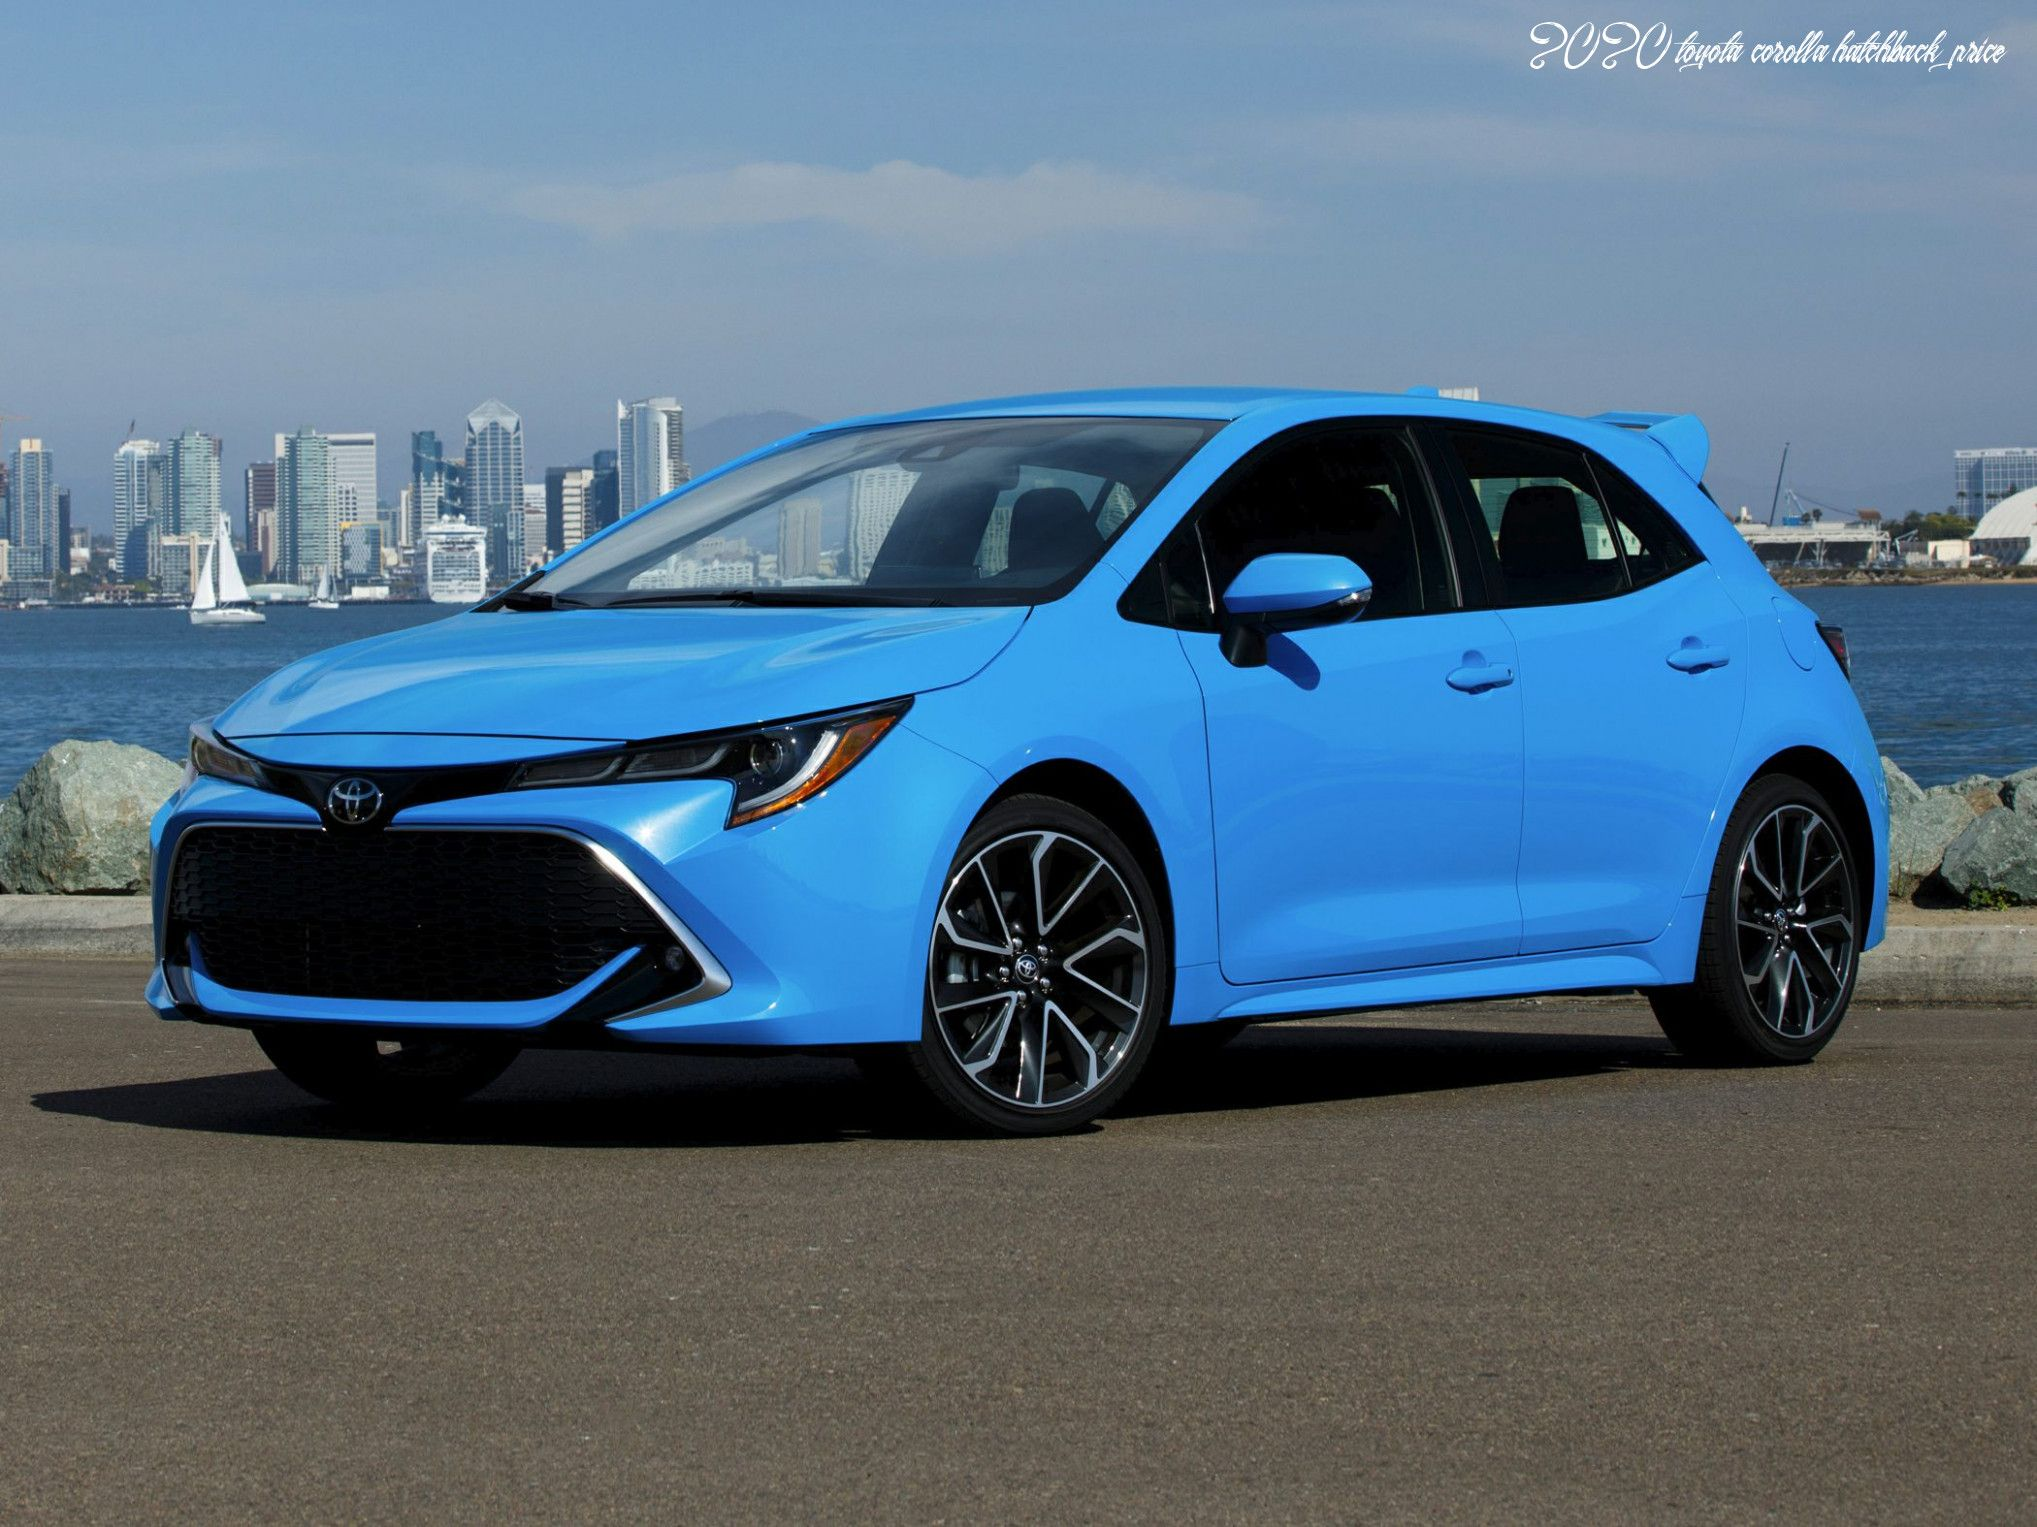 2020 Toyota Corolla Hatchback Price Redesign And Review in